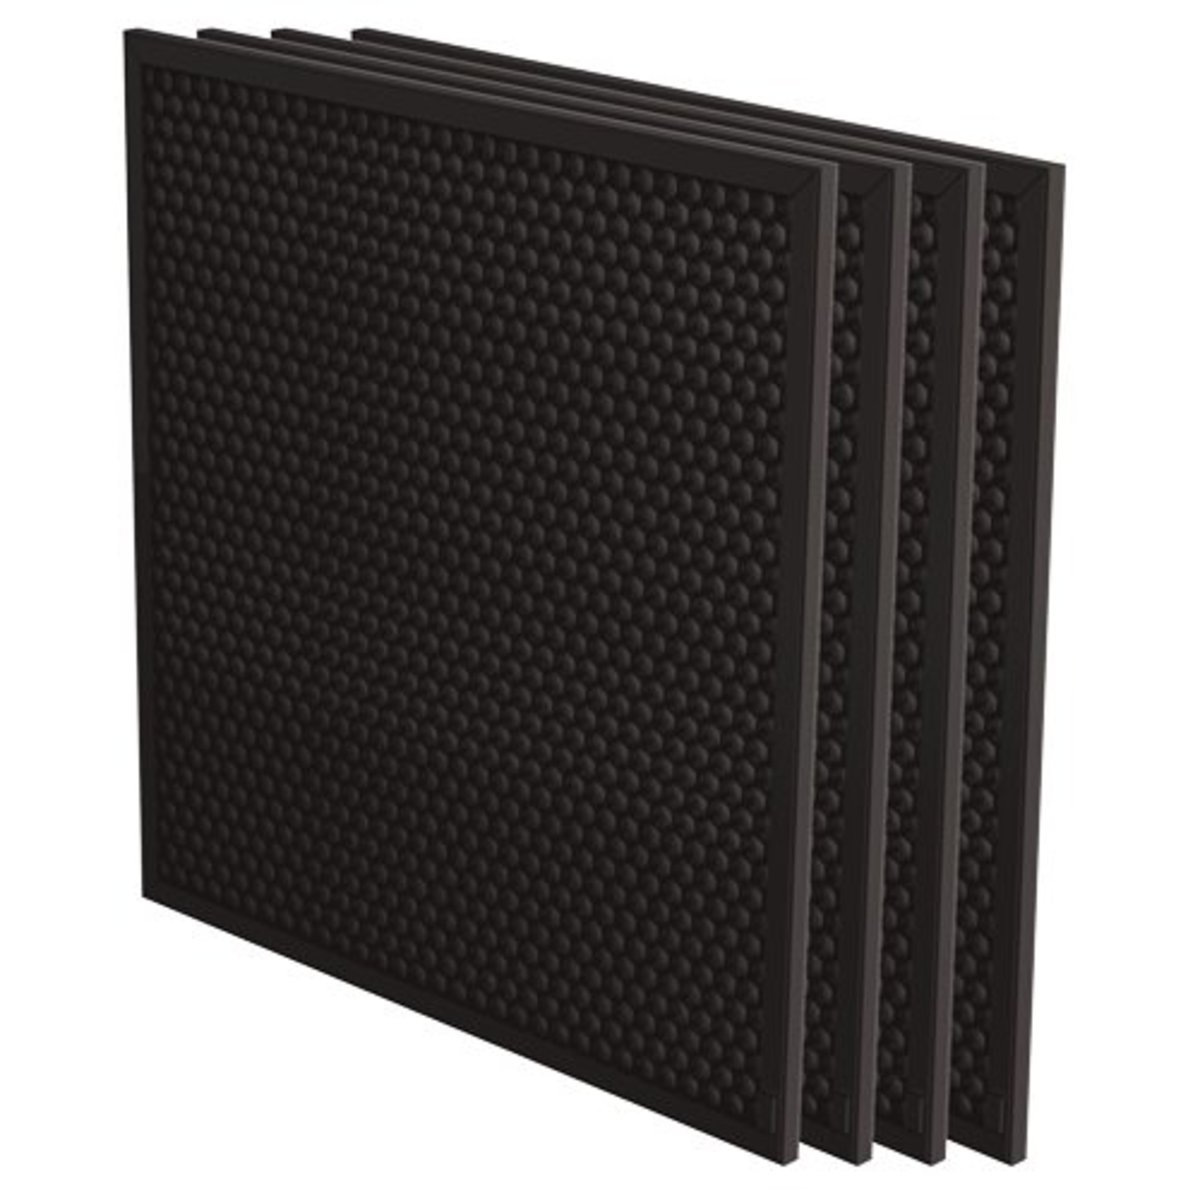 Fellowes Aeramax Pro Carbon Filter with Pre-Filter - 4pk